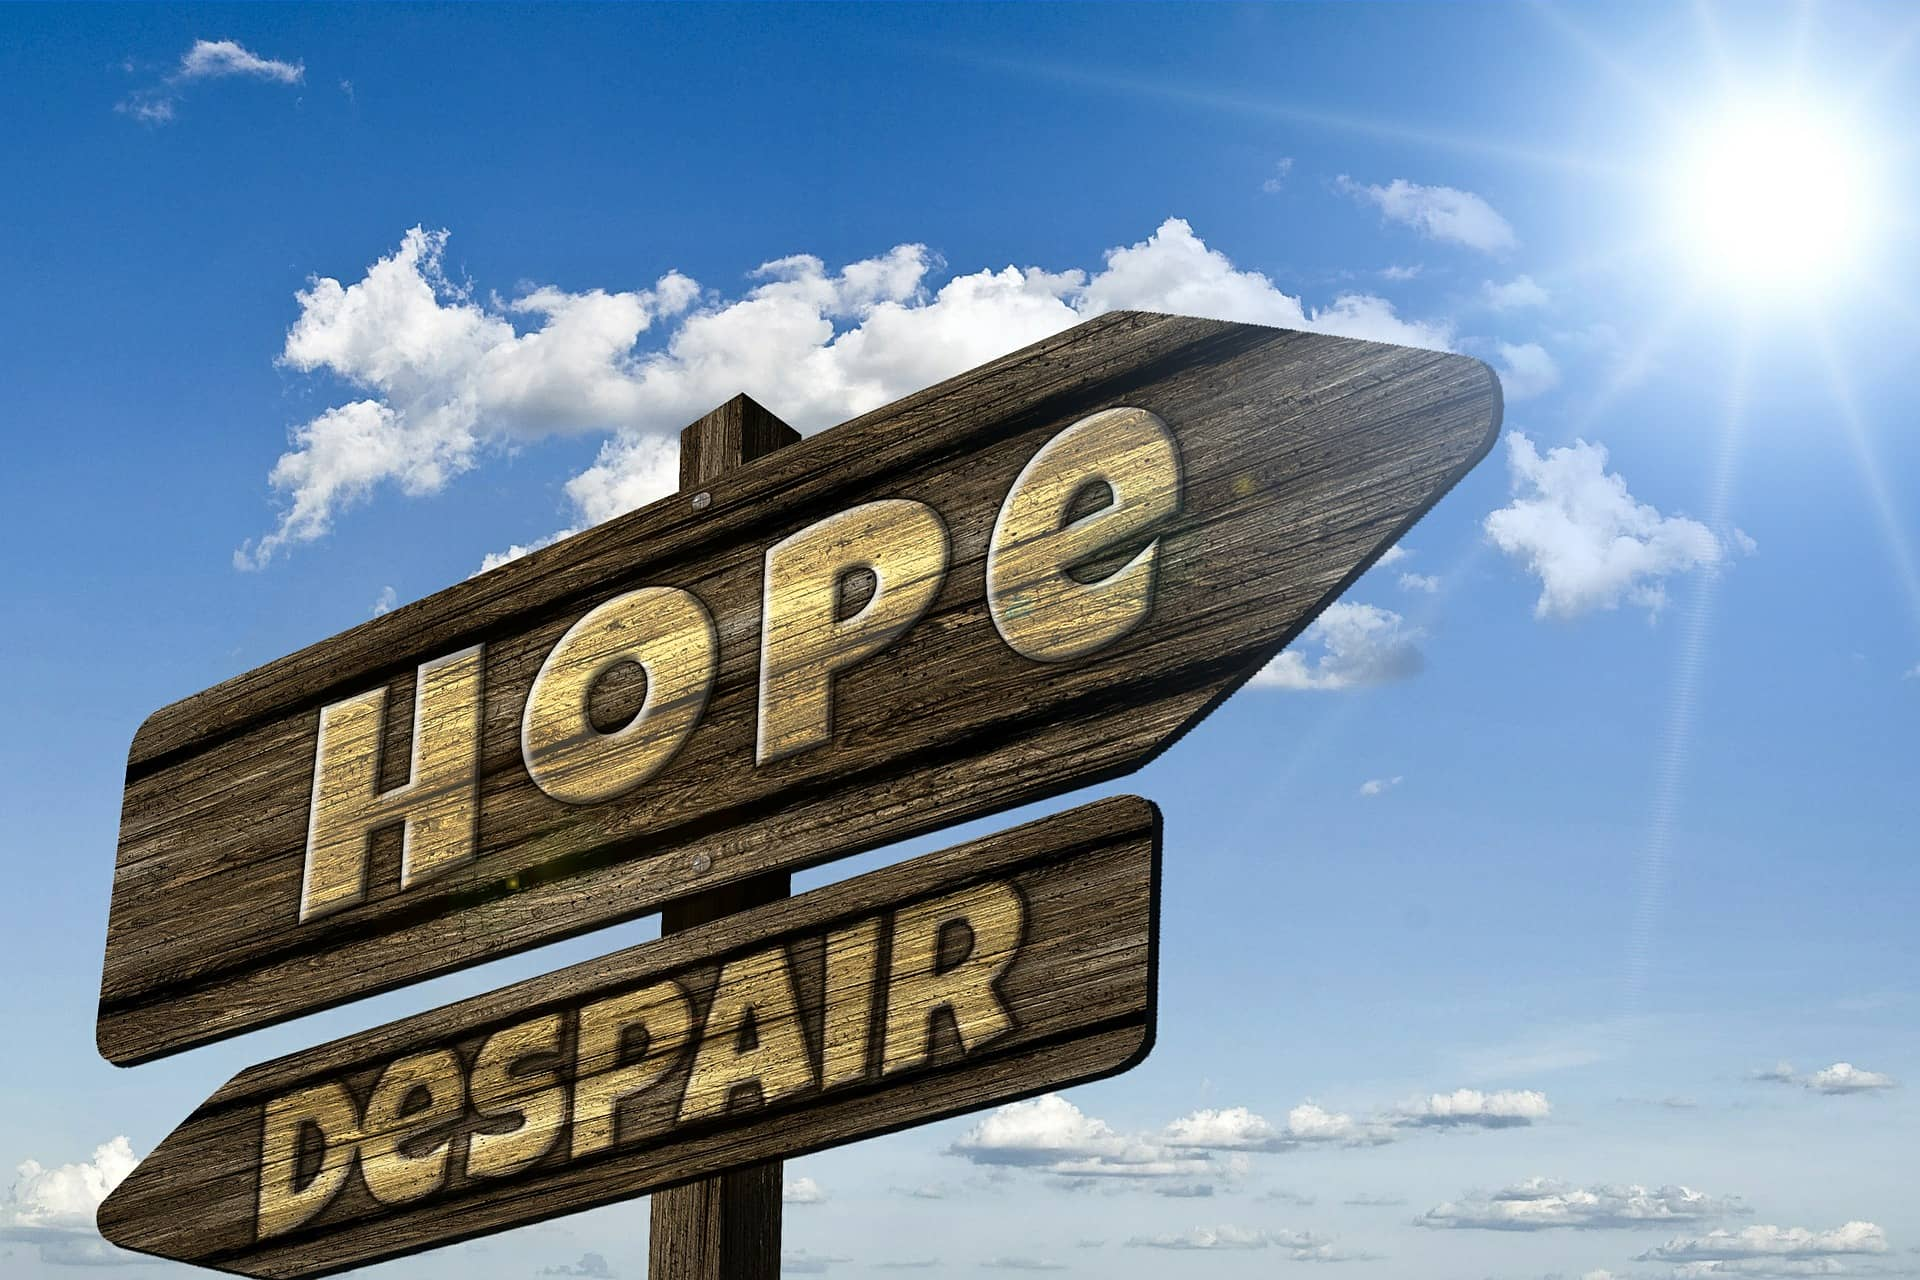 signposts reading hope and despair pointing in opposite directions